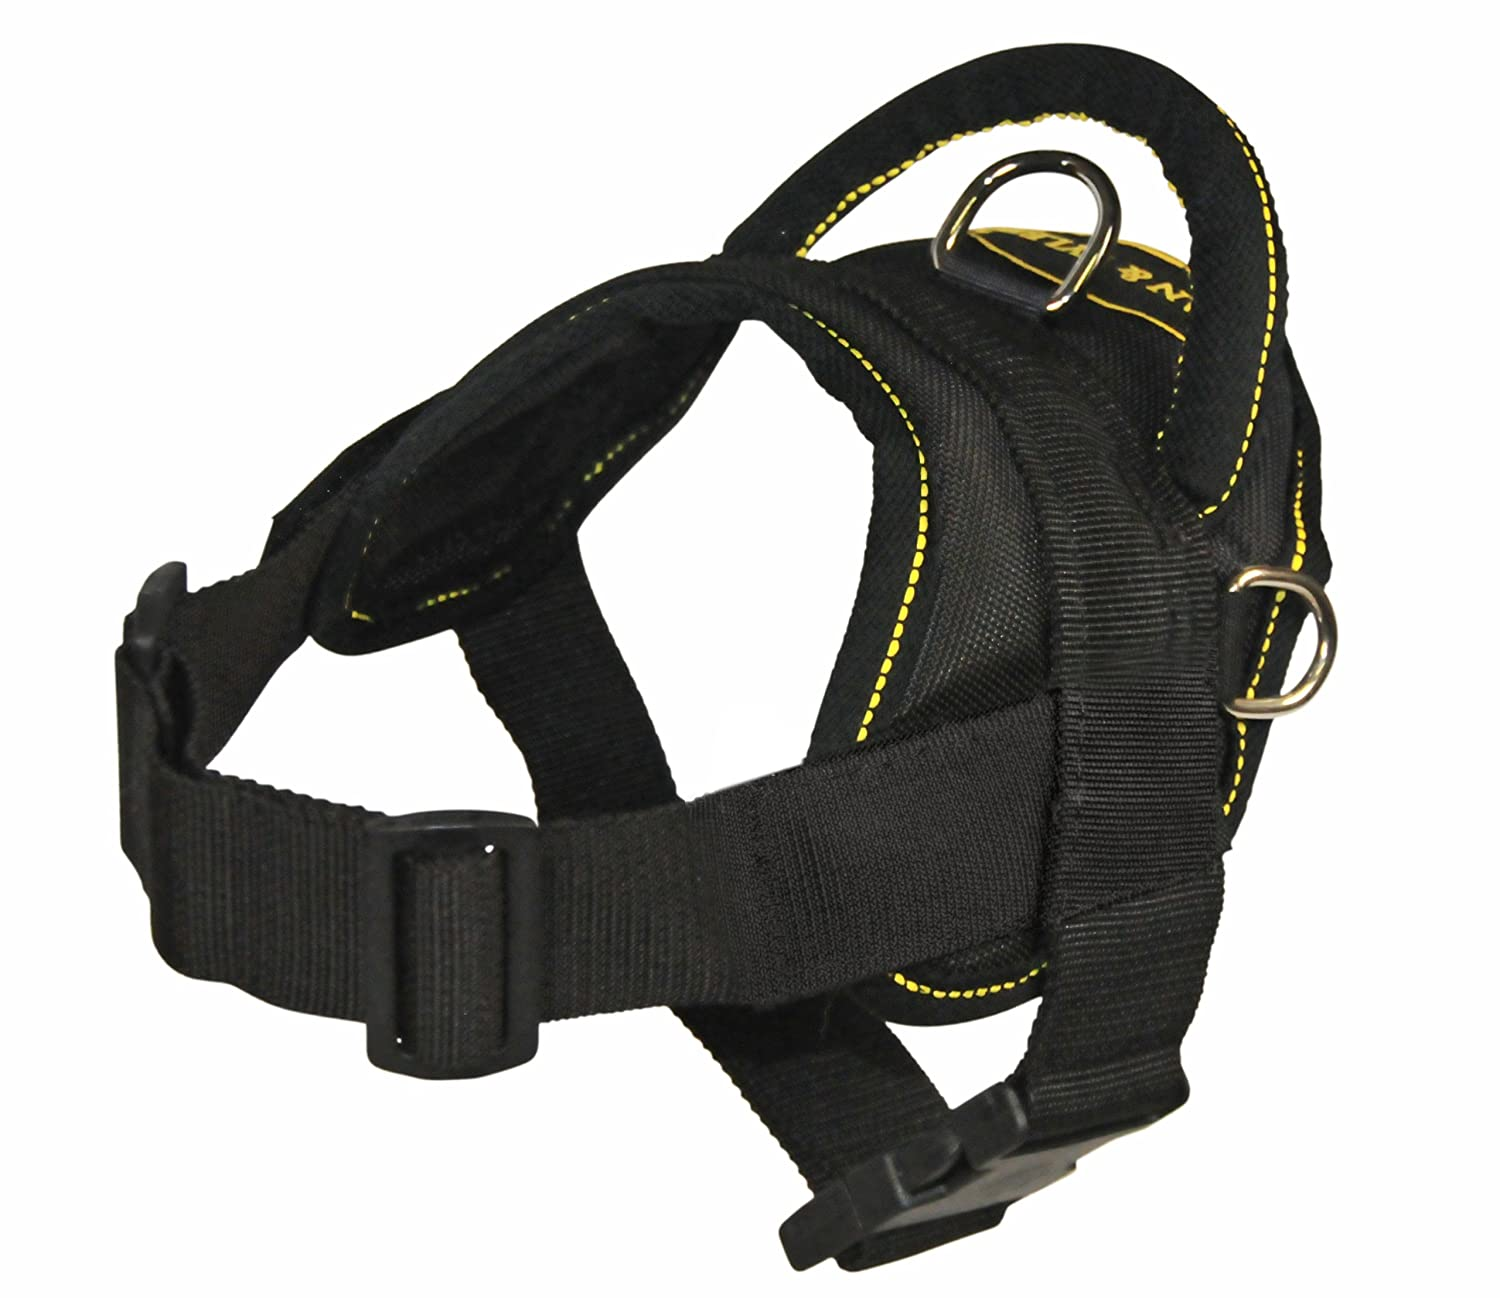 XS Dean & Tyler DT Dog Harness with Trim, XS, Black  Yellow